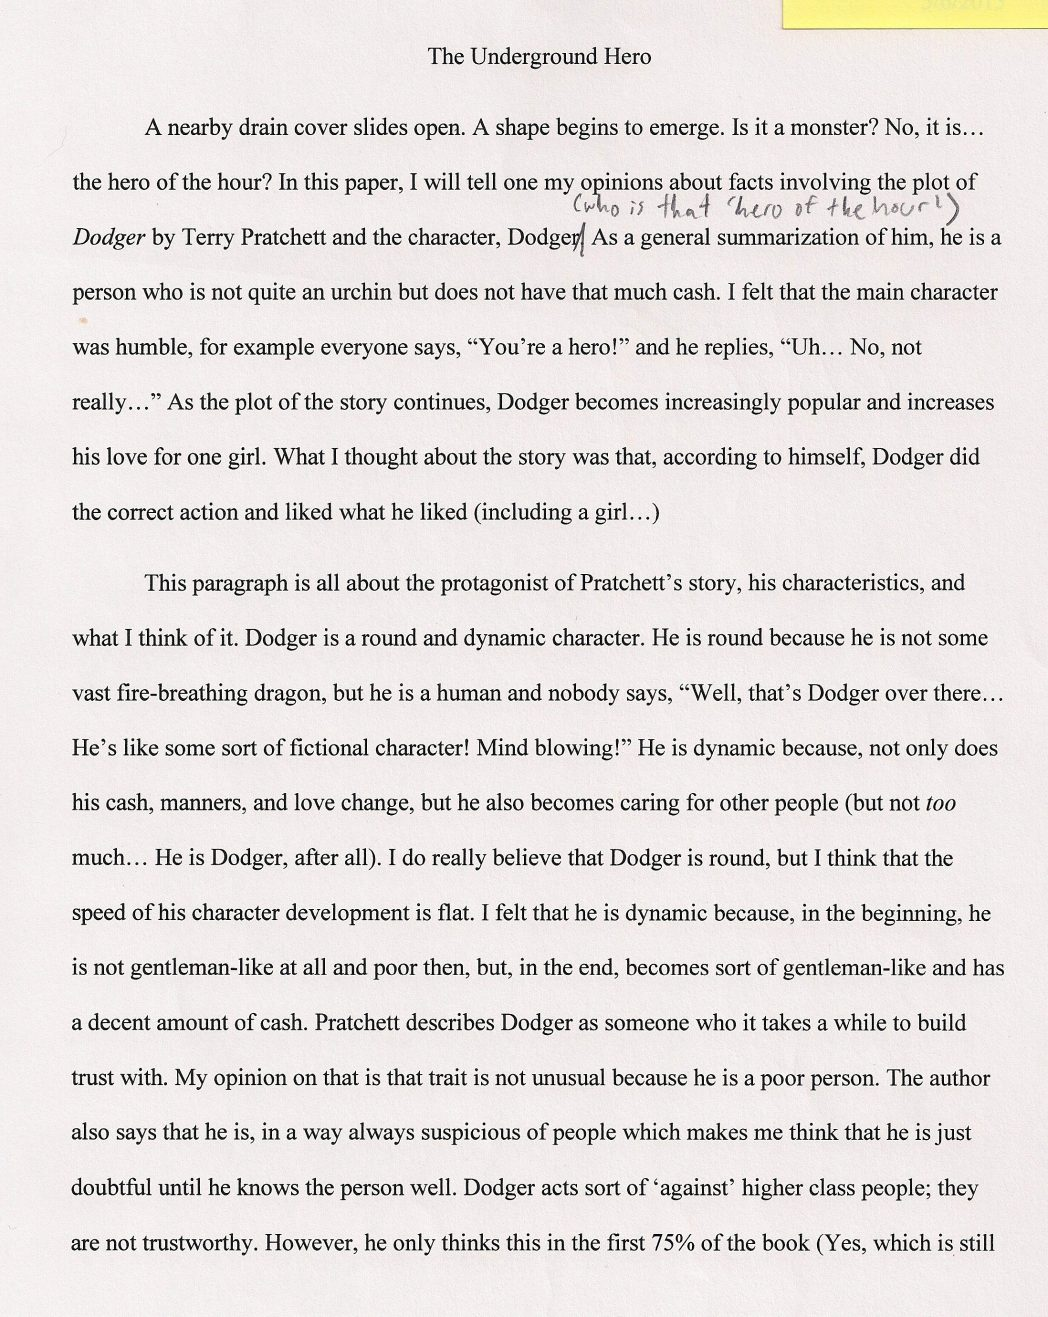 010 Satire Essay Global Warming On Heroes My Hero Essays How To Write An Argumentative The Undergro Persuasive About Study Mode Good Paper 1048x1317 Beautiful Examples Gun Control Questions Ideas Full